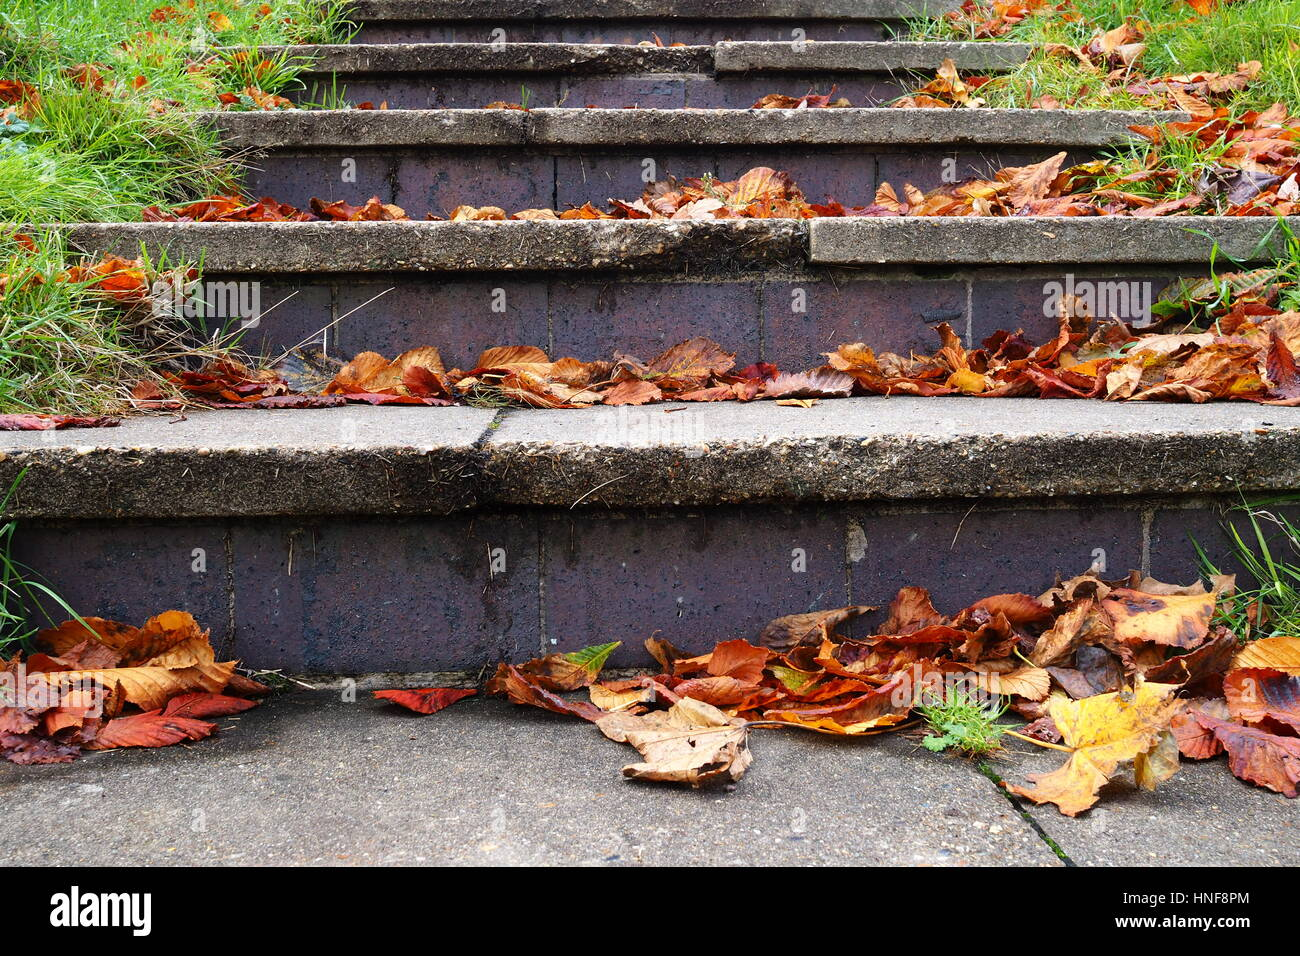 Stairway made out of slabs - Stock Image